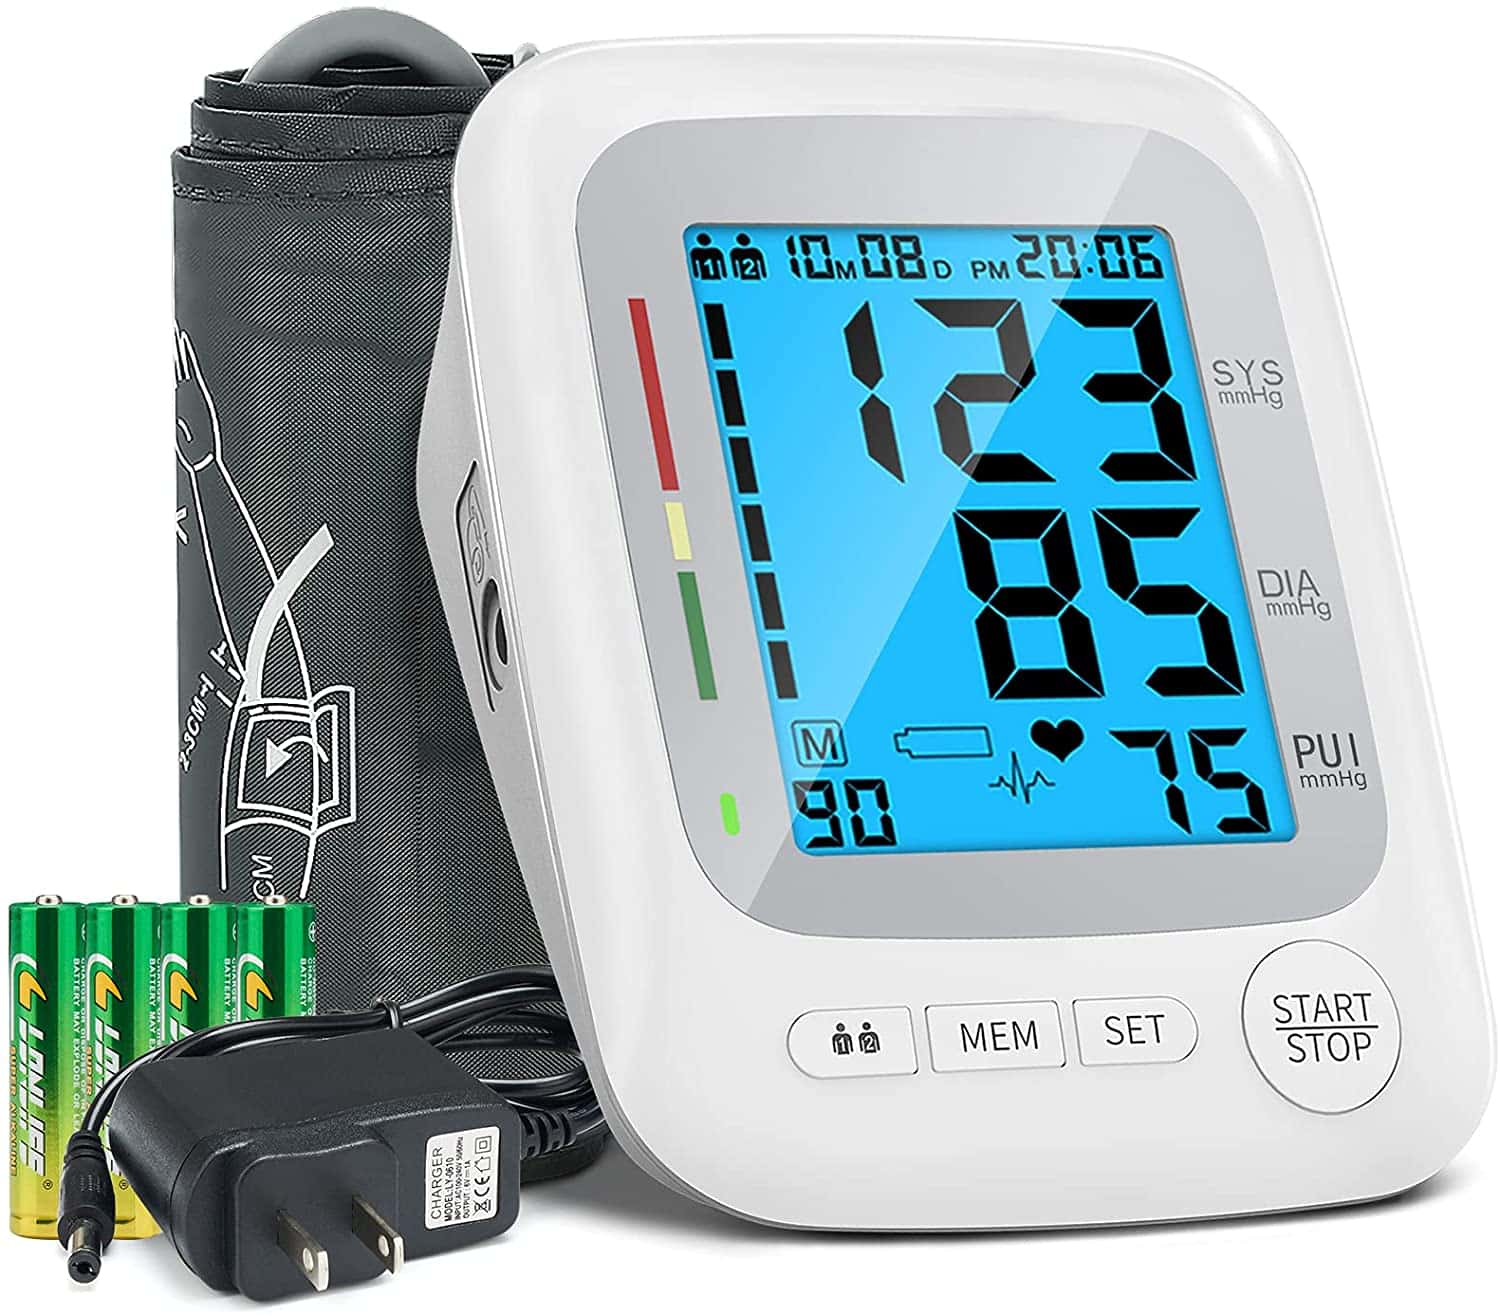 Amazon: Blood Pressure Monitor for Upper Arm with Large Backlit Display, Just $22.19 (Reg $36.99) after code!